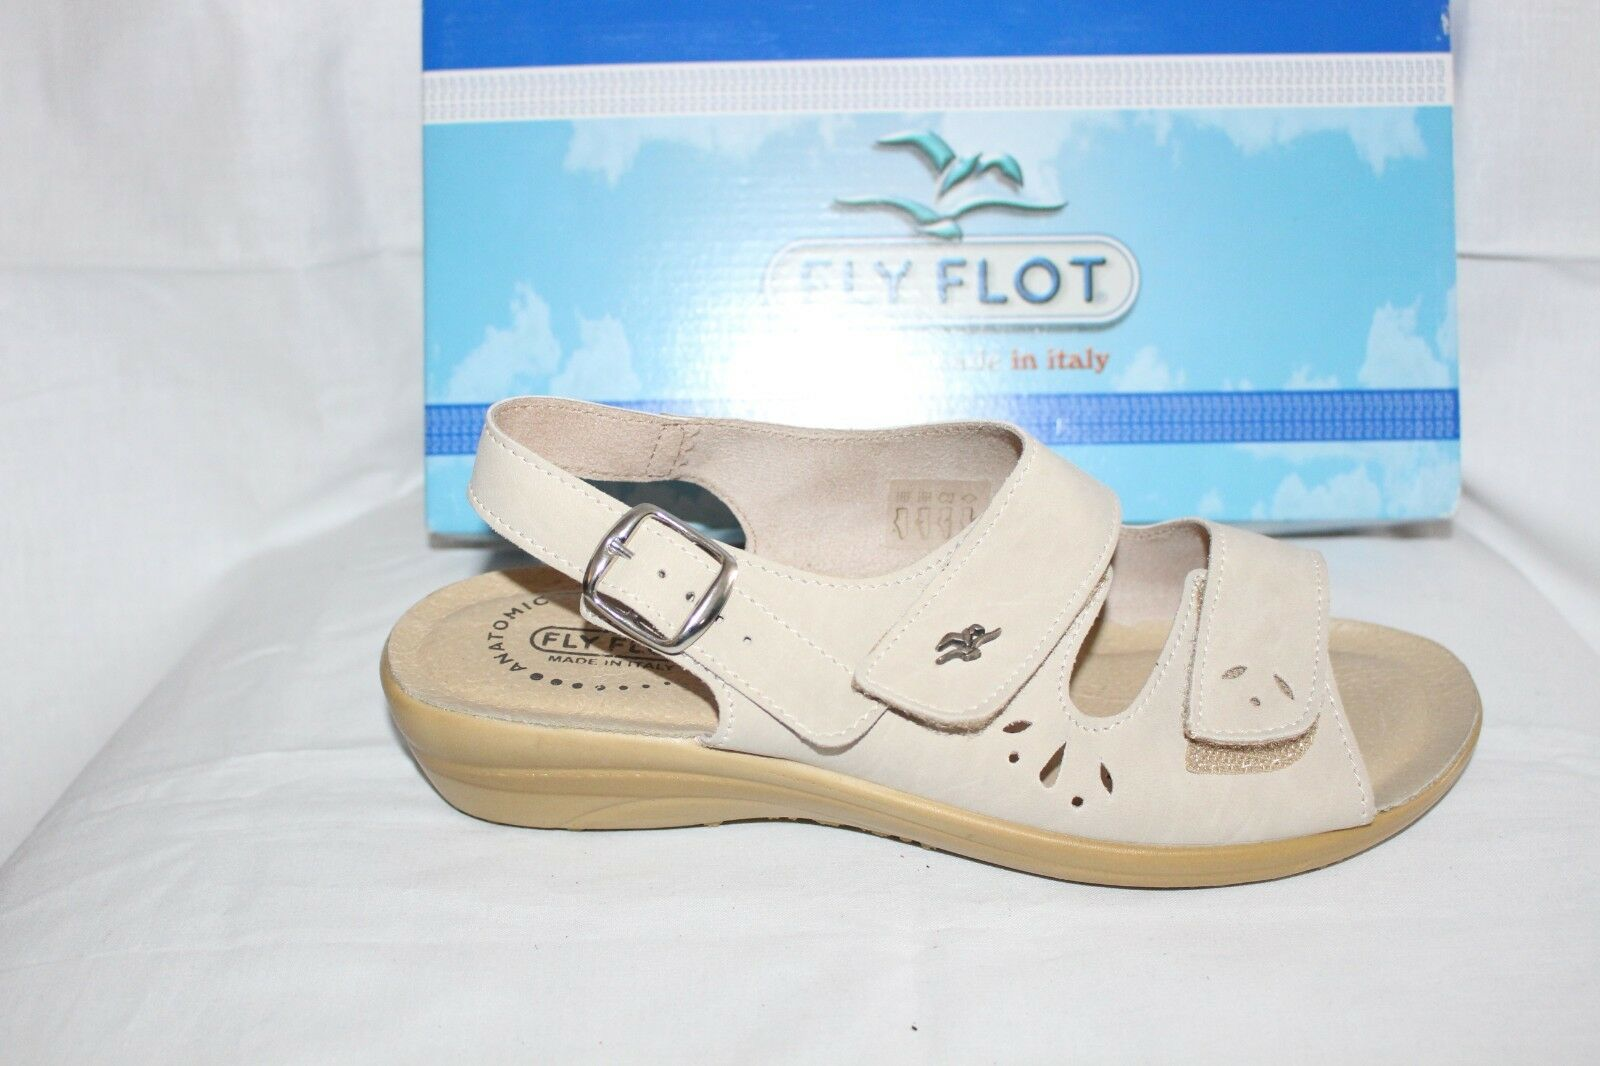 LADIES SHOES SHOES SHOES FOOTWEAR - Flyflot Sandal 36539 beige 06d57b